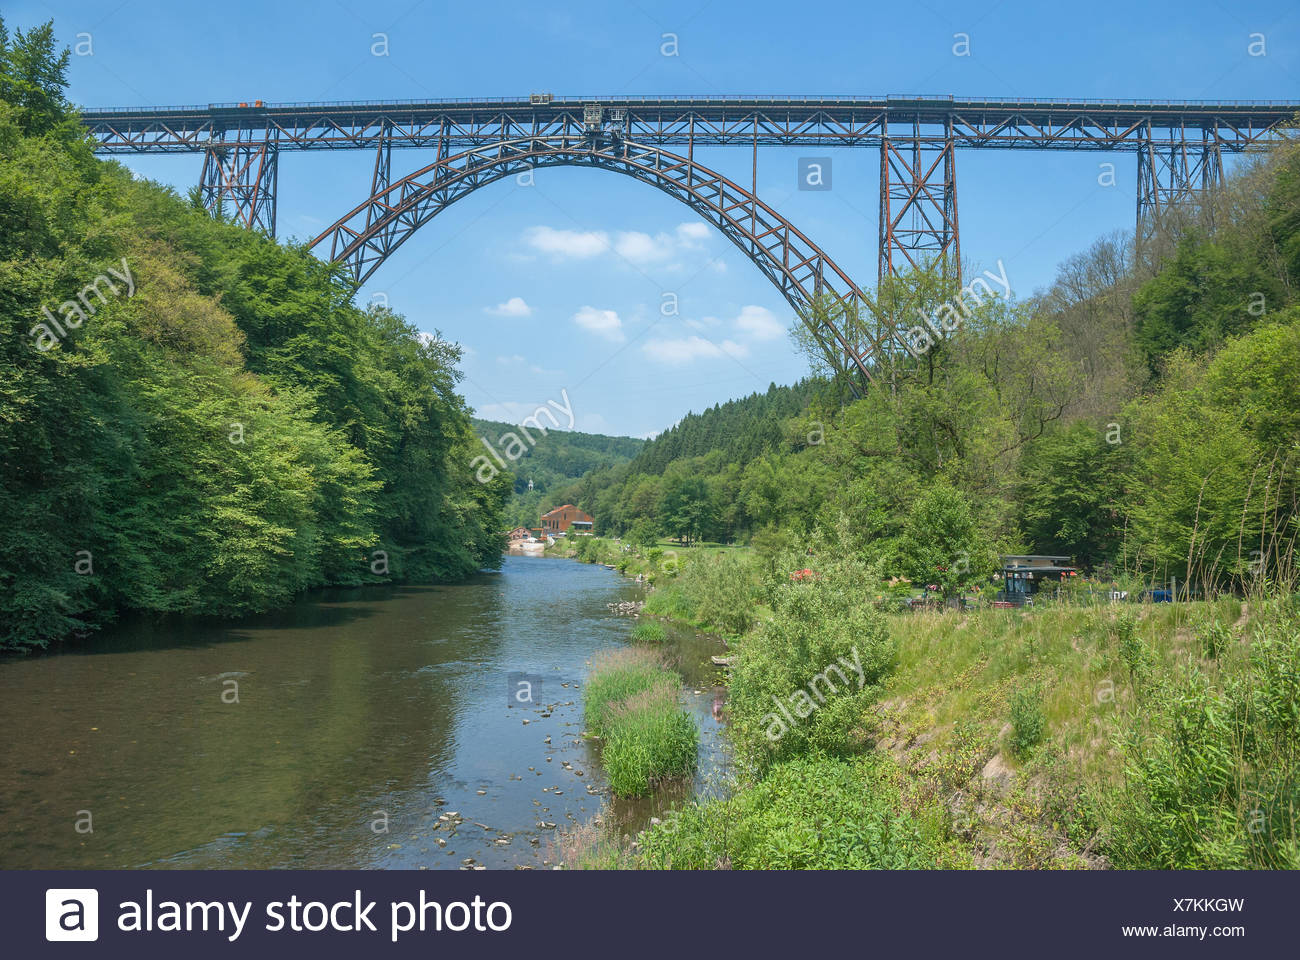 Muengstener Bruecke near Solingen,Germany - Stock Image